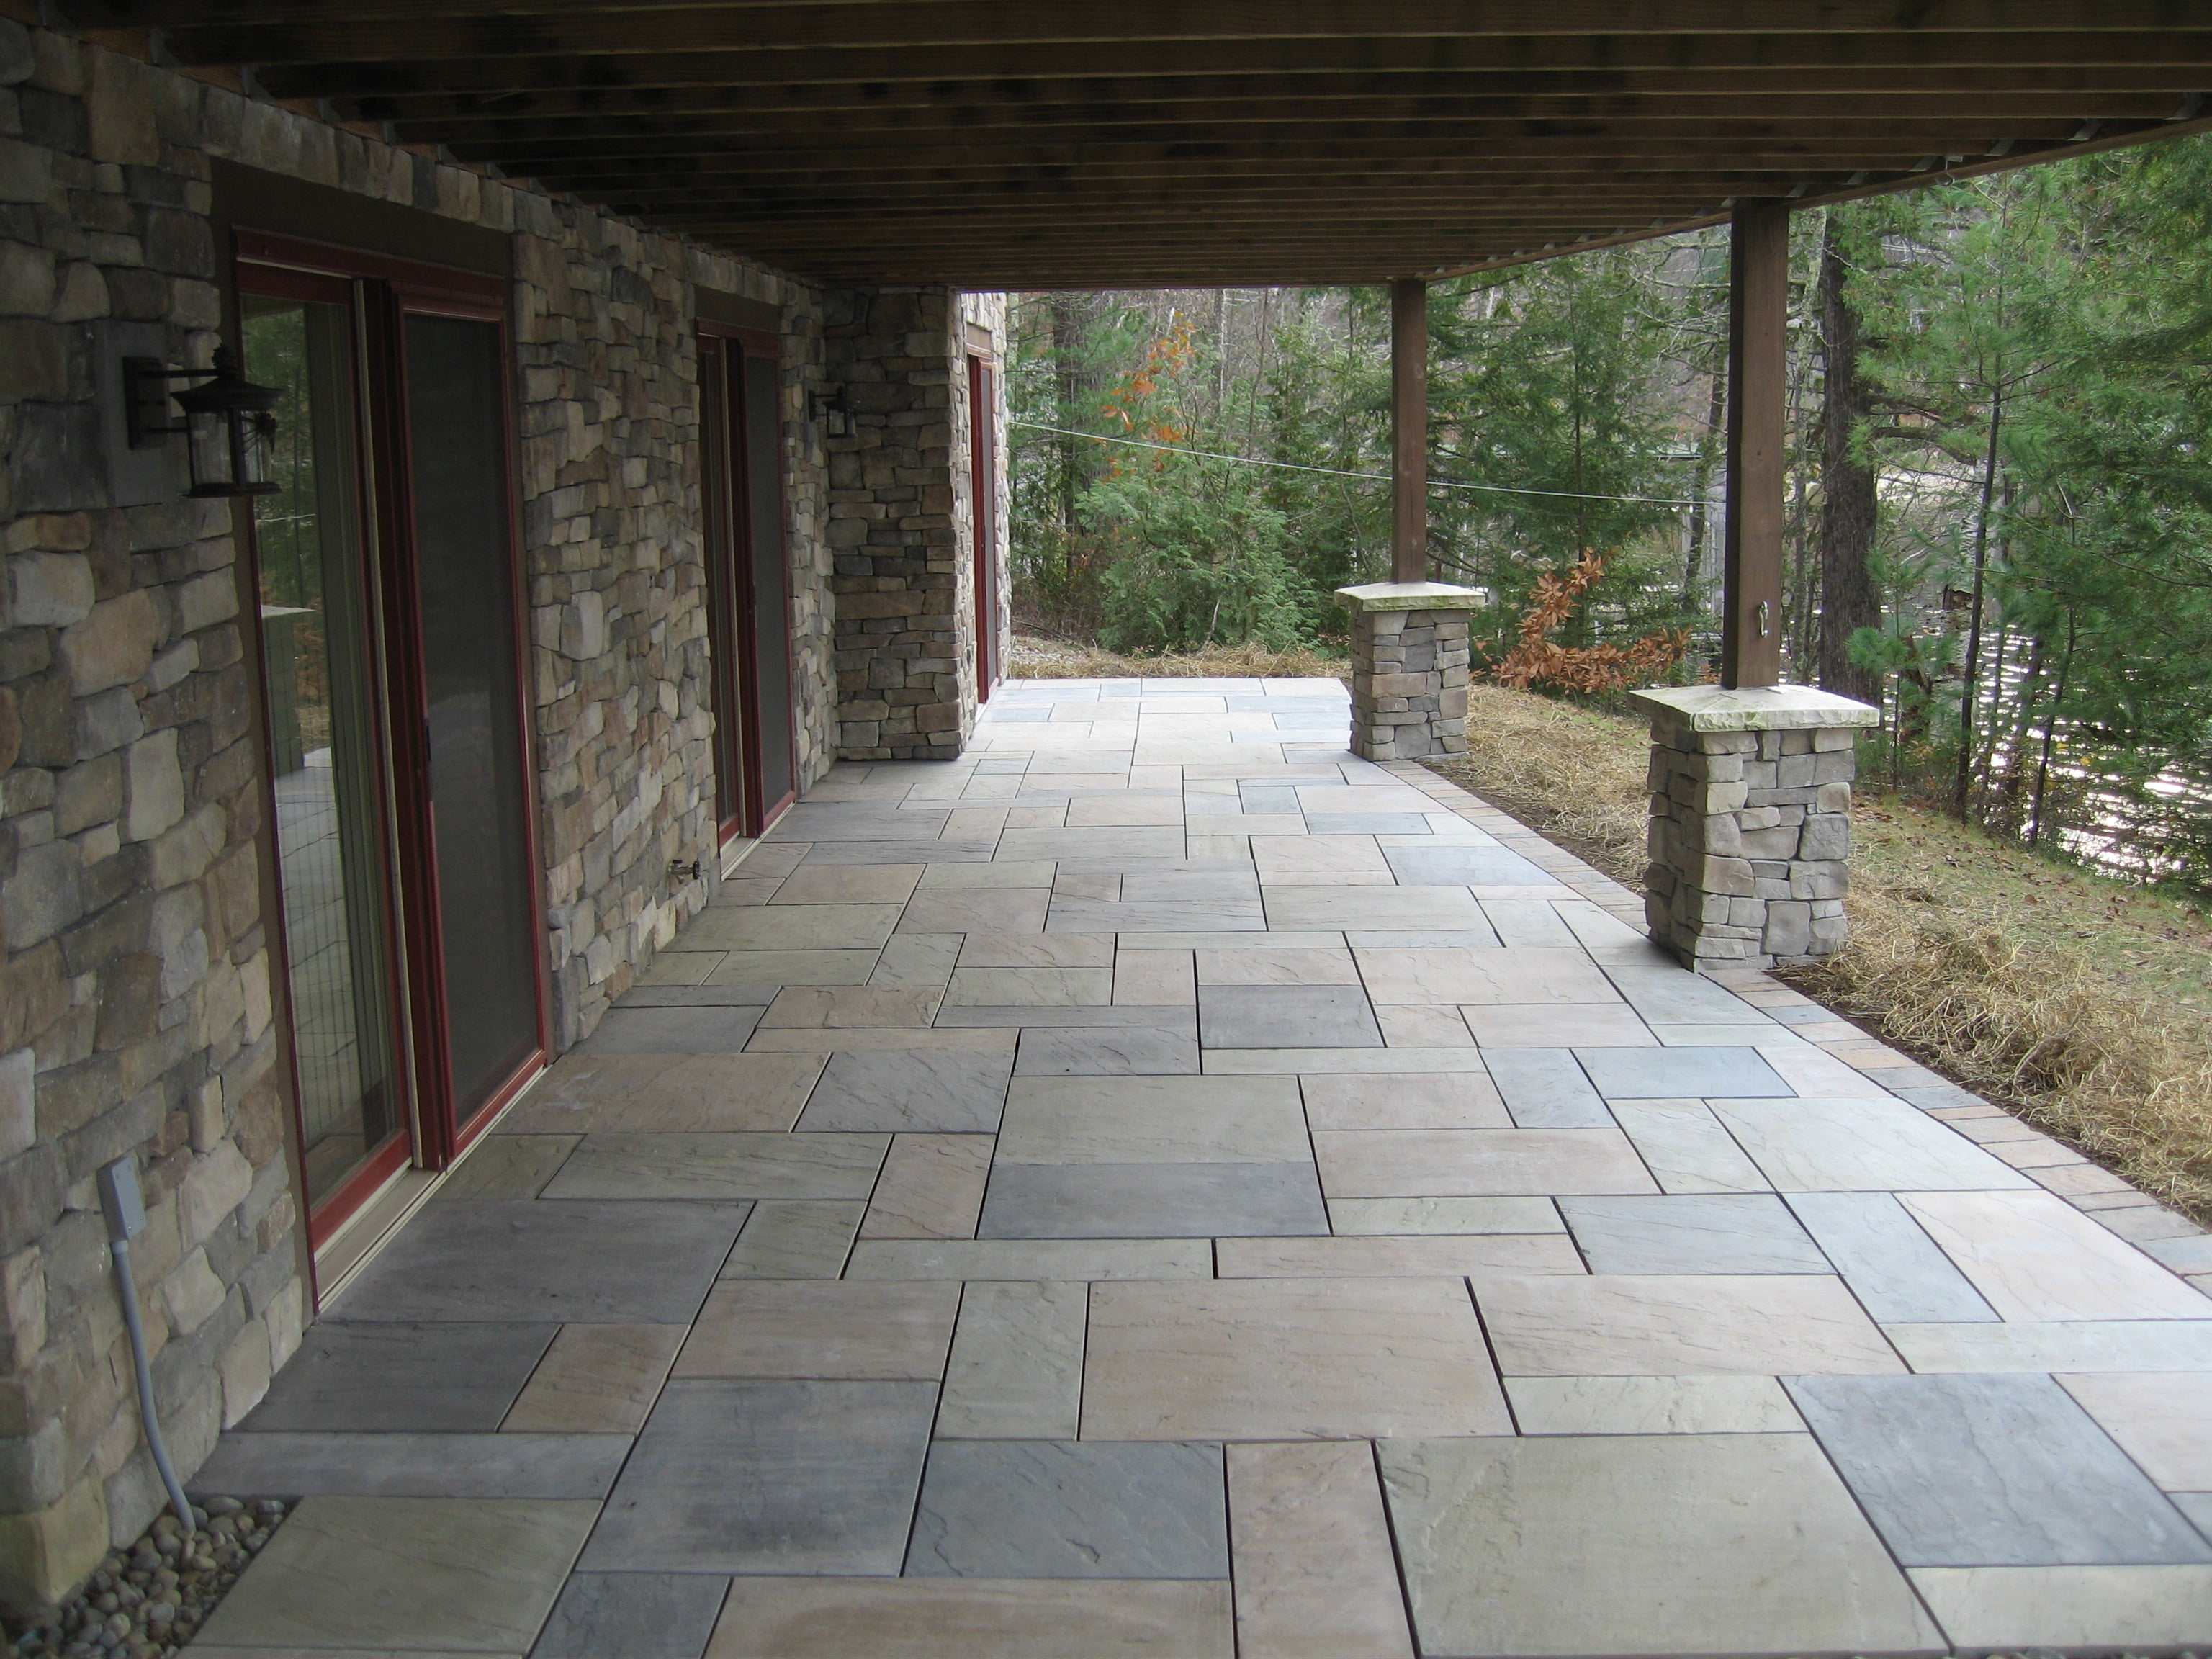 How To Pick The Best Pavers For Your Patio - RI Landscaper ... on Paver Patio Designs id=46865